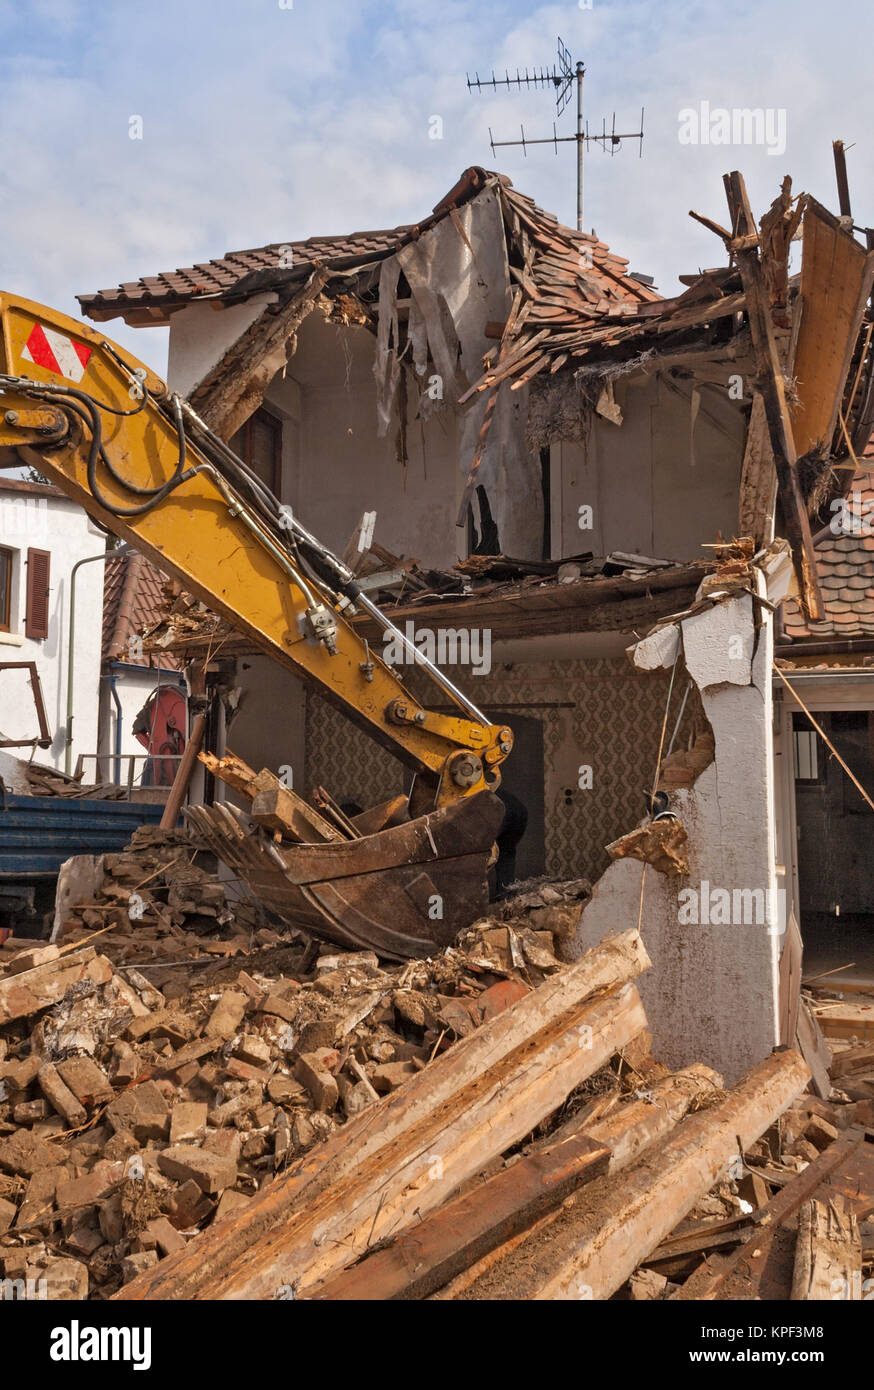 Demolition debris removal stock photos demolition debris for Classic house track with saxophone